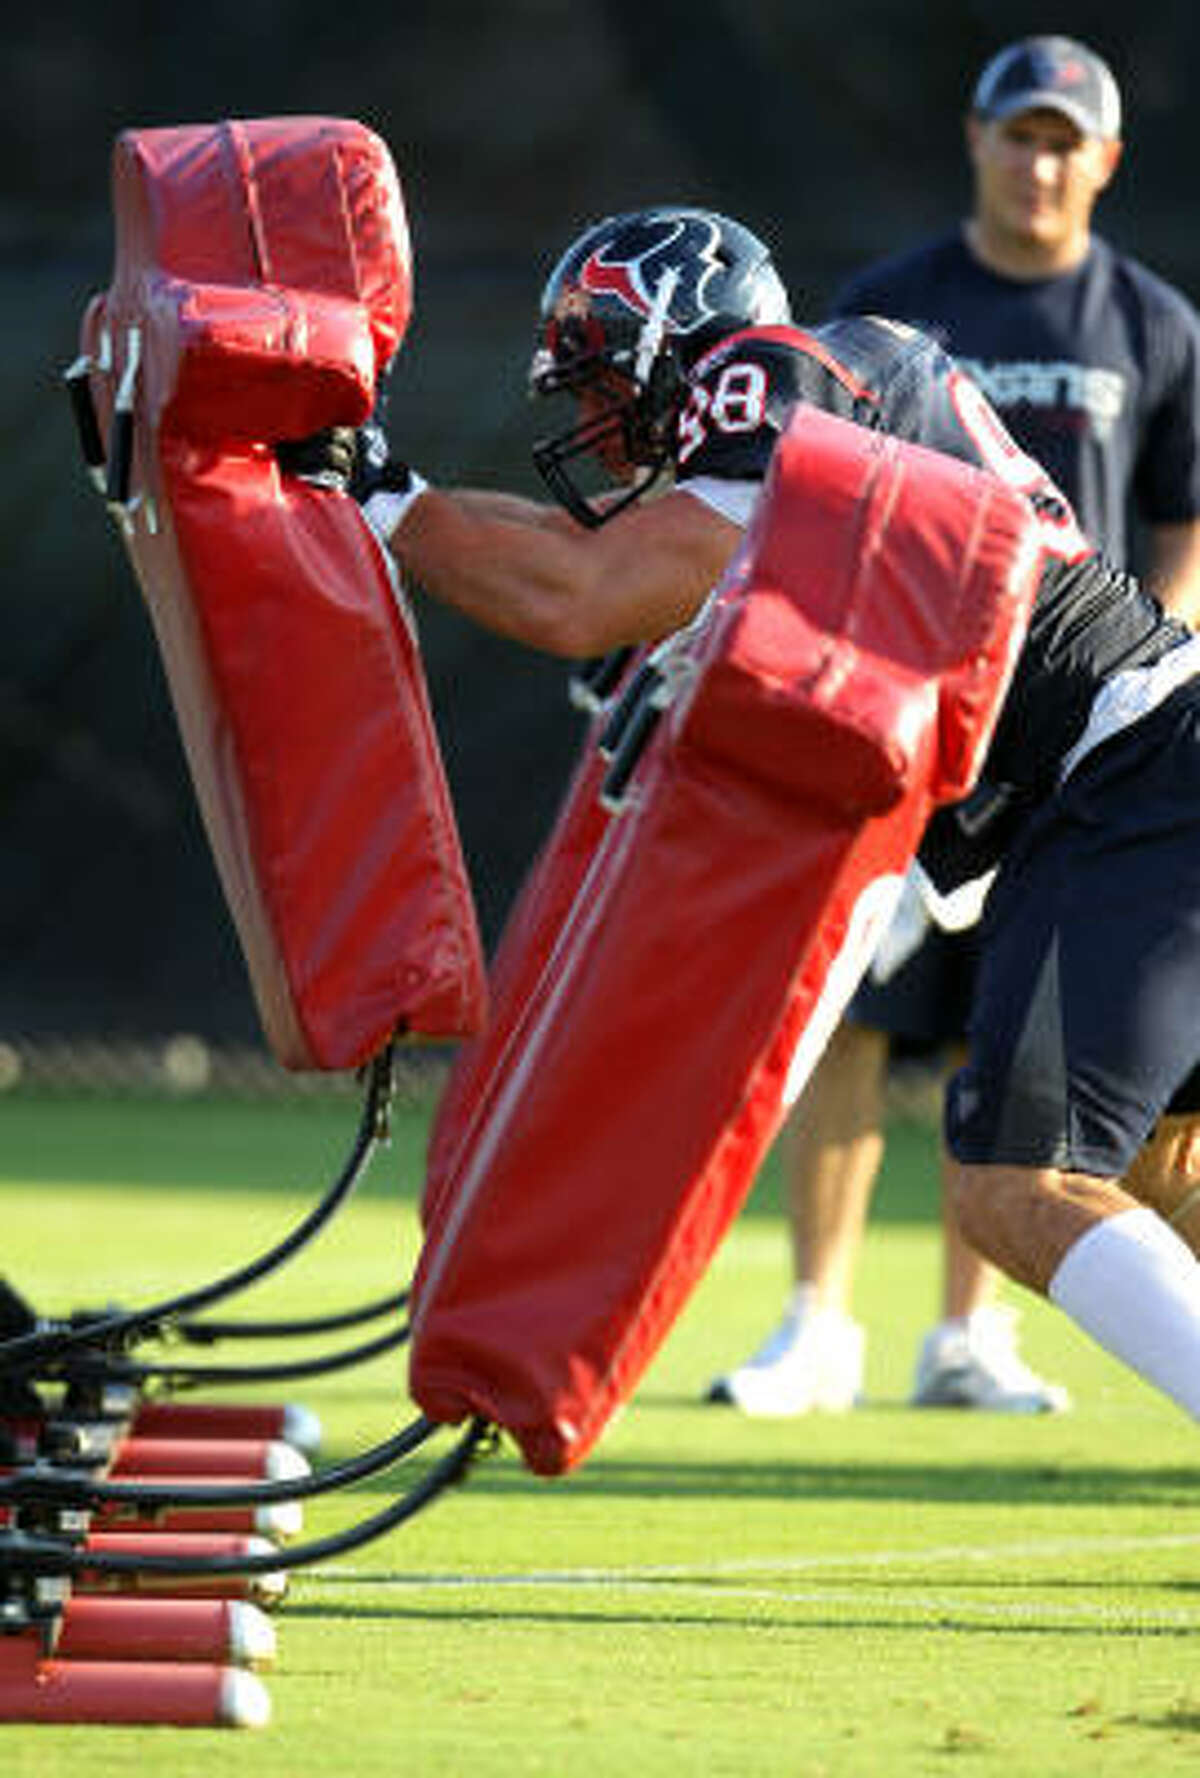 Texans defensive end Connor Barwin participates in a drill during Tuesday's practice.